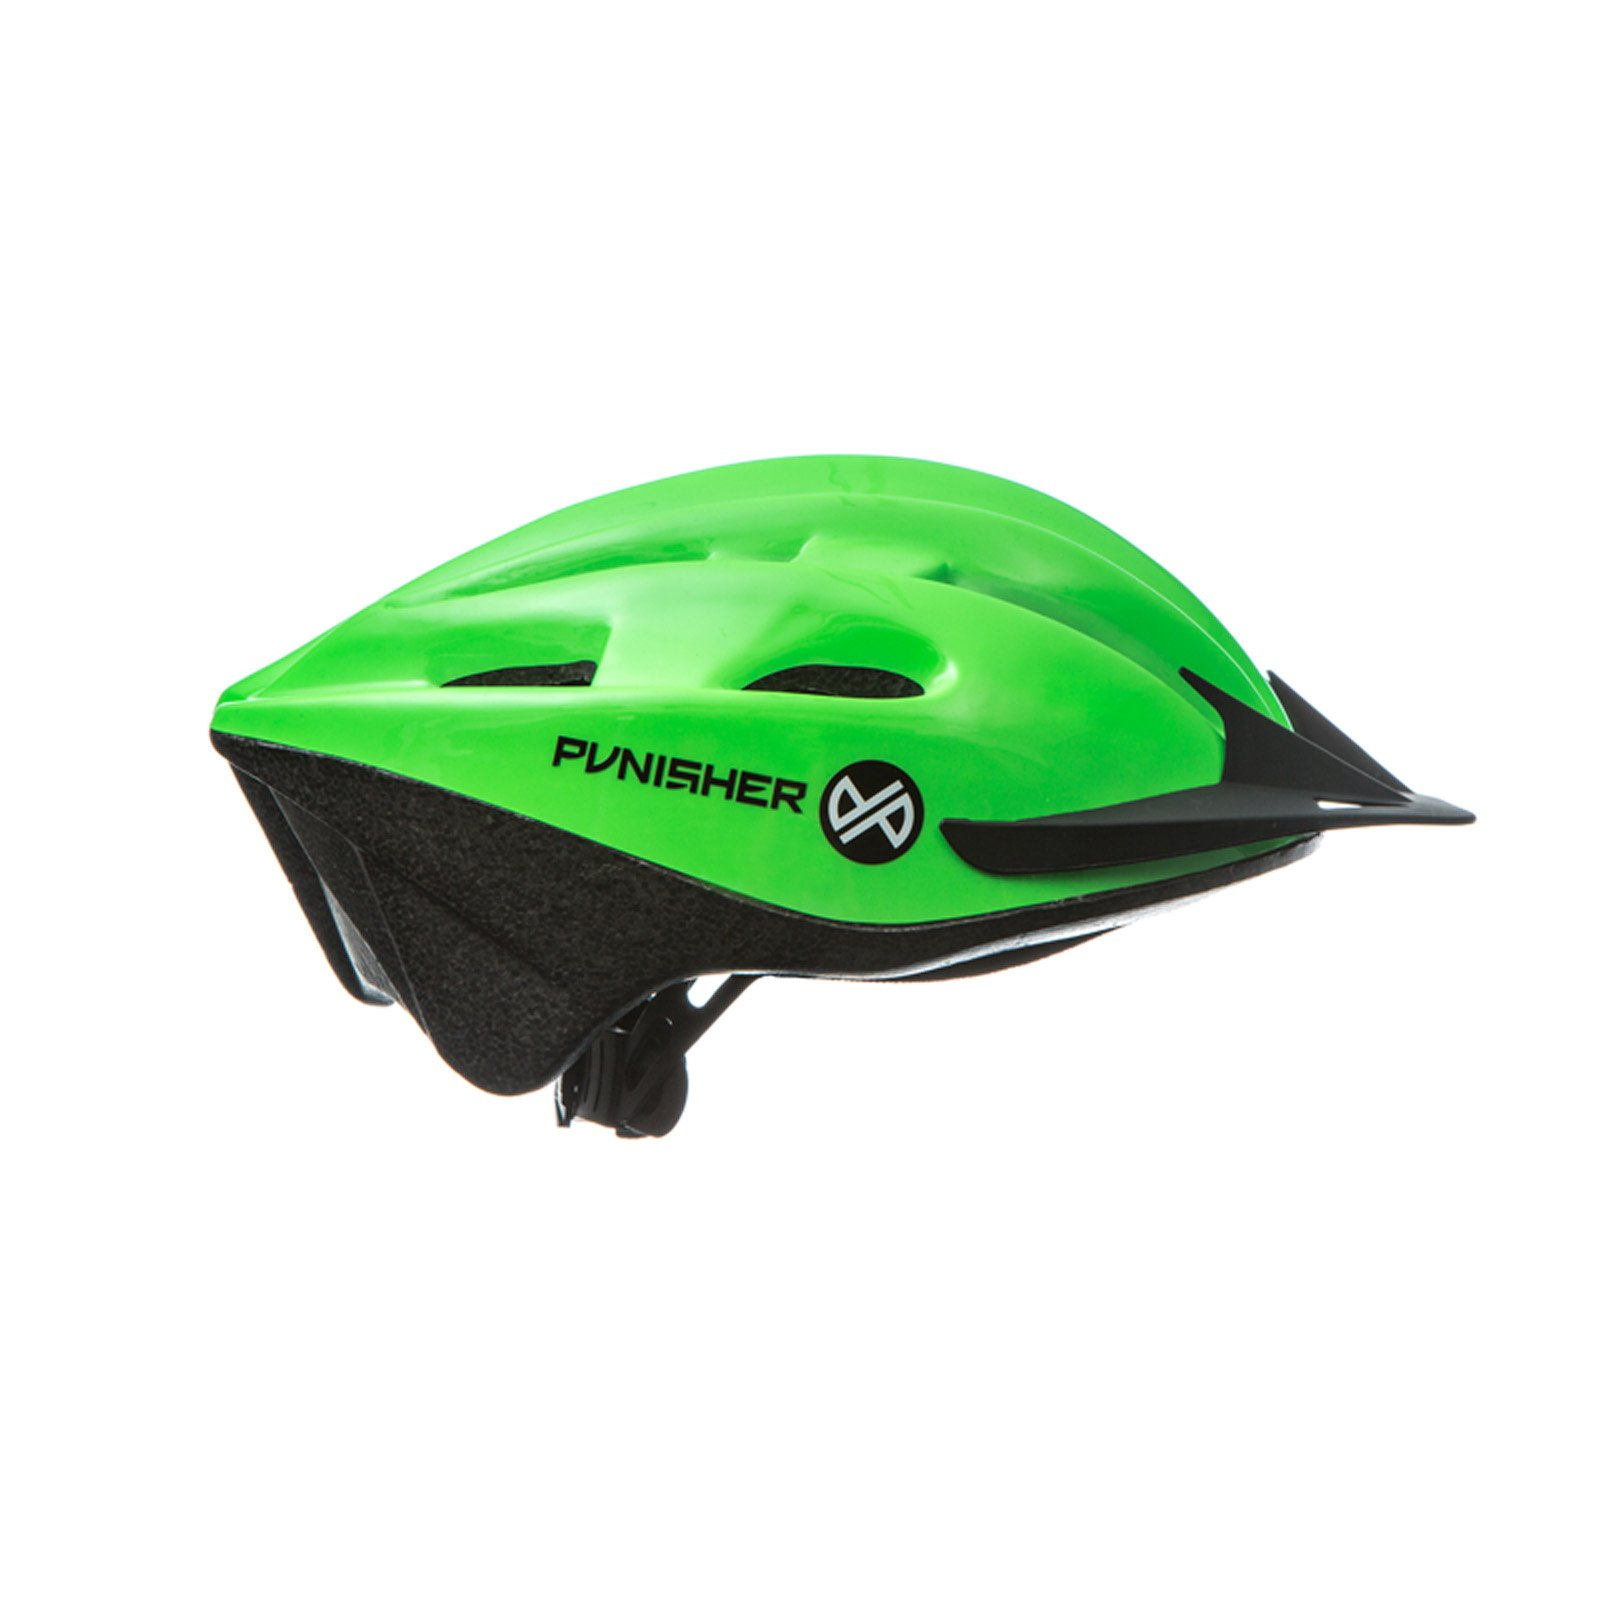 Punisher 18-Vent Adult Cycling Helmet, Lime Green by Punisher Skateboards